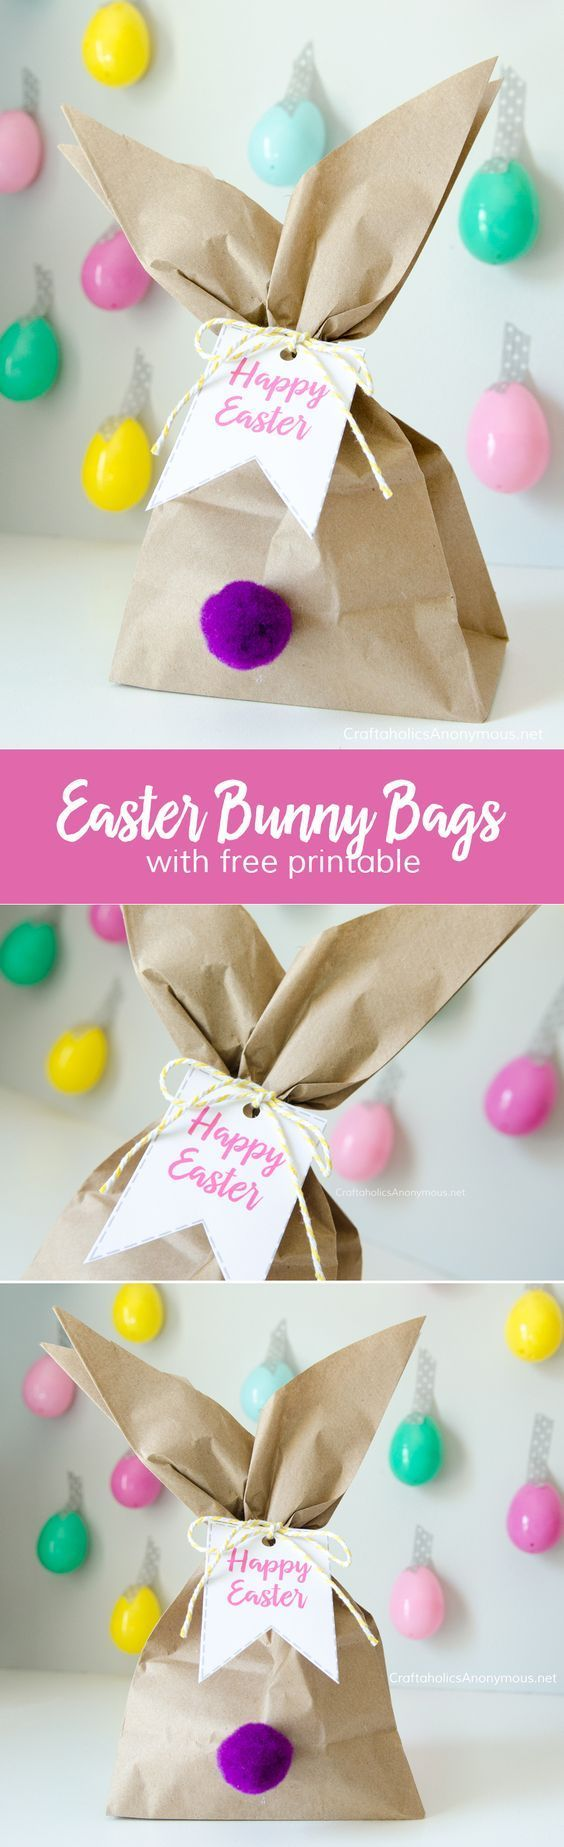 25 Best Ideas About Easter Party On Pinterest Easter